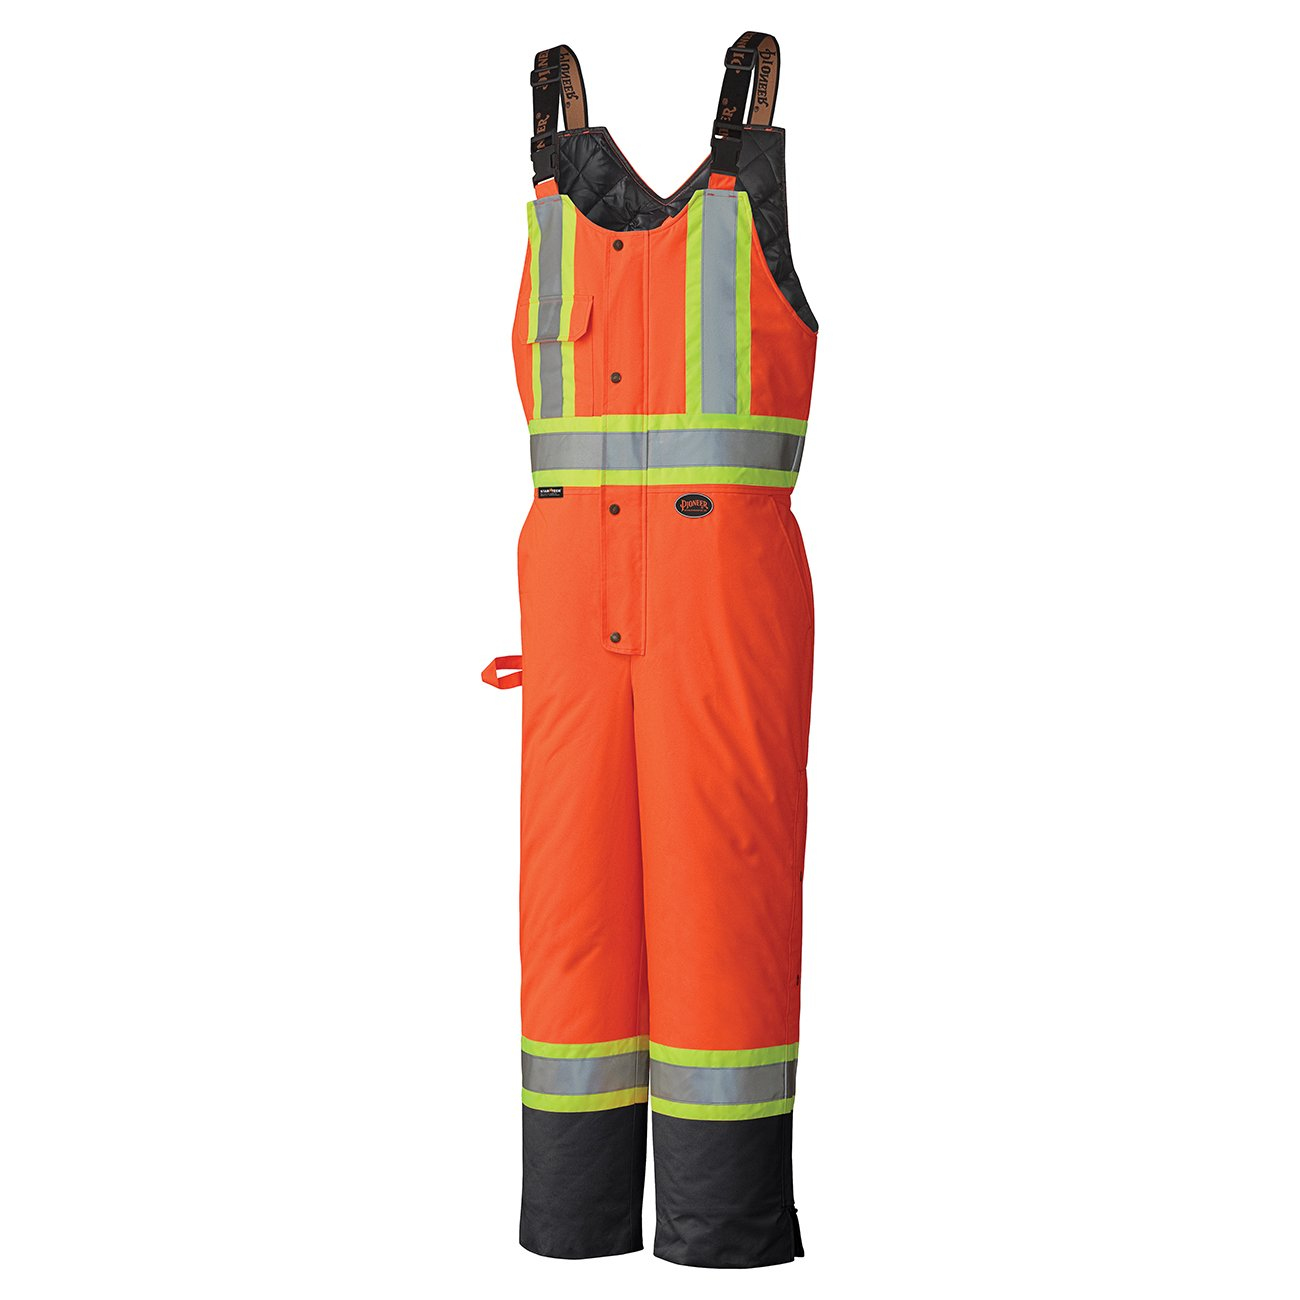 Pioneer V1120870-3XL Insulated Waterproof Work Overall - Easy Boot Access, Hi-Vis Bib Pants, Men, Black, 3XL